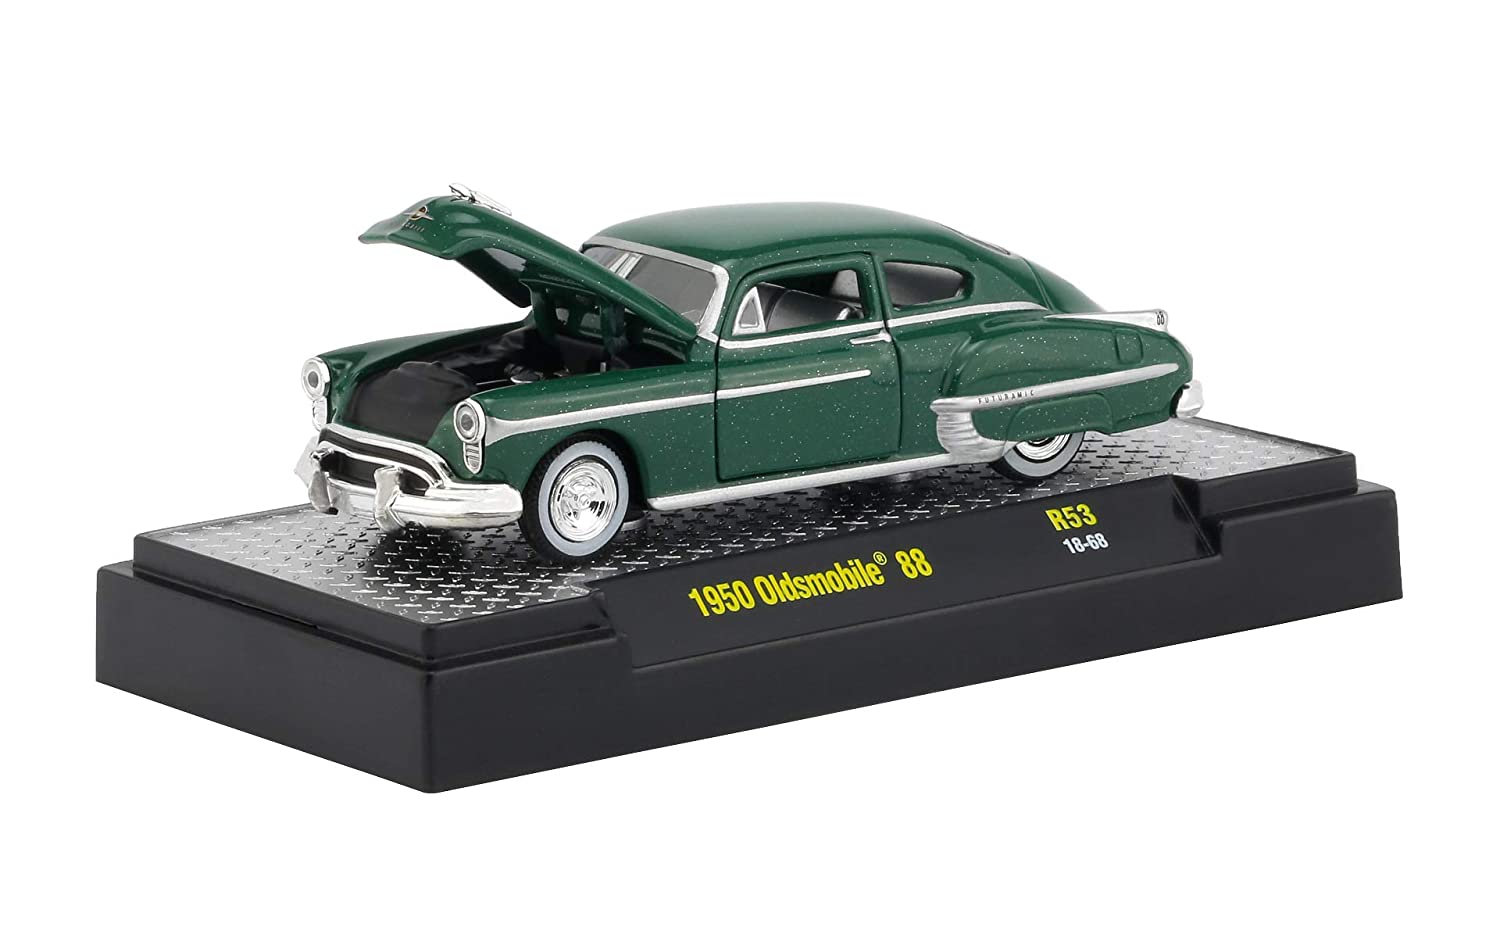 Auto Thentics 6 Piece Set Release 53 in Display Cases 1//64 Diecast Model Cars by M2 Machines 32500-53